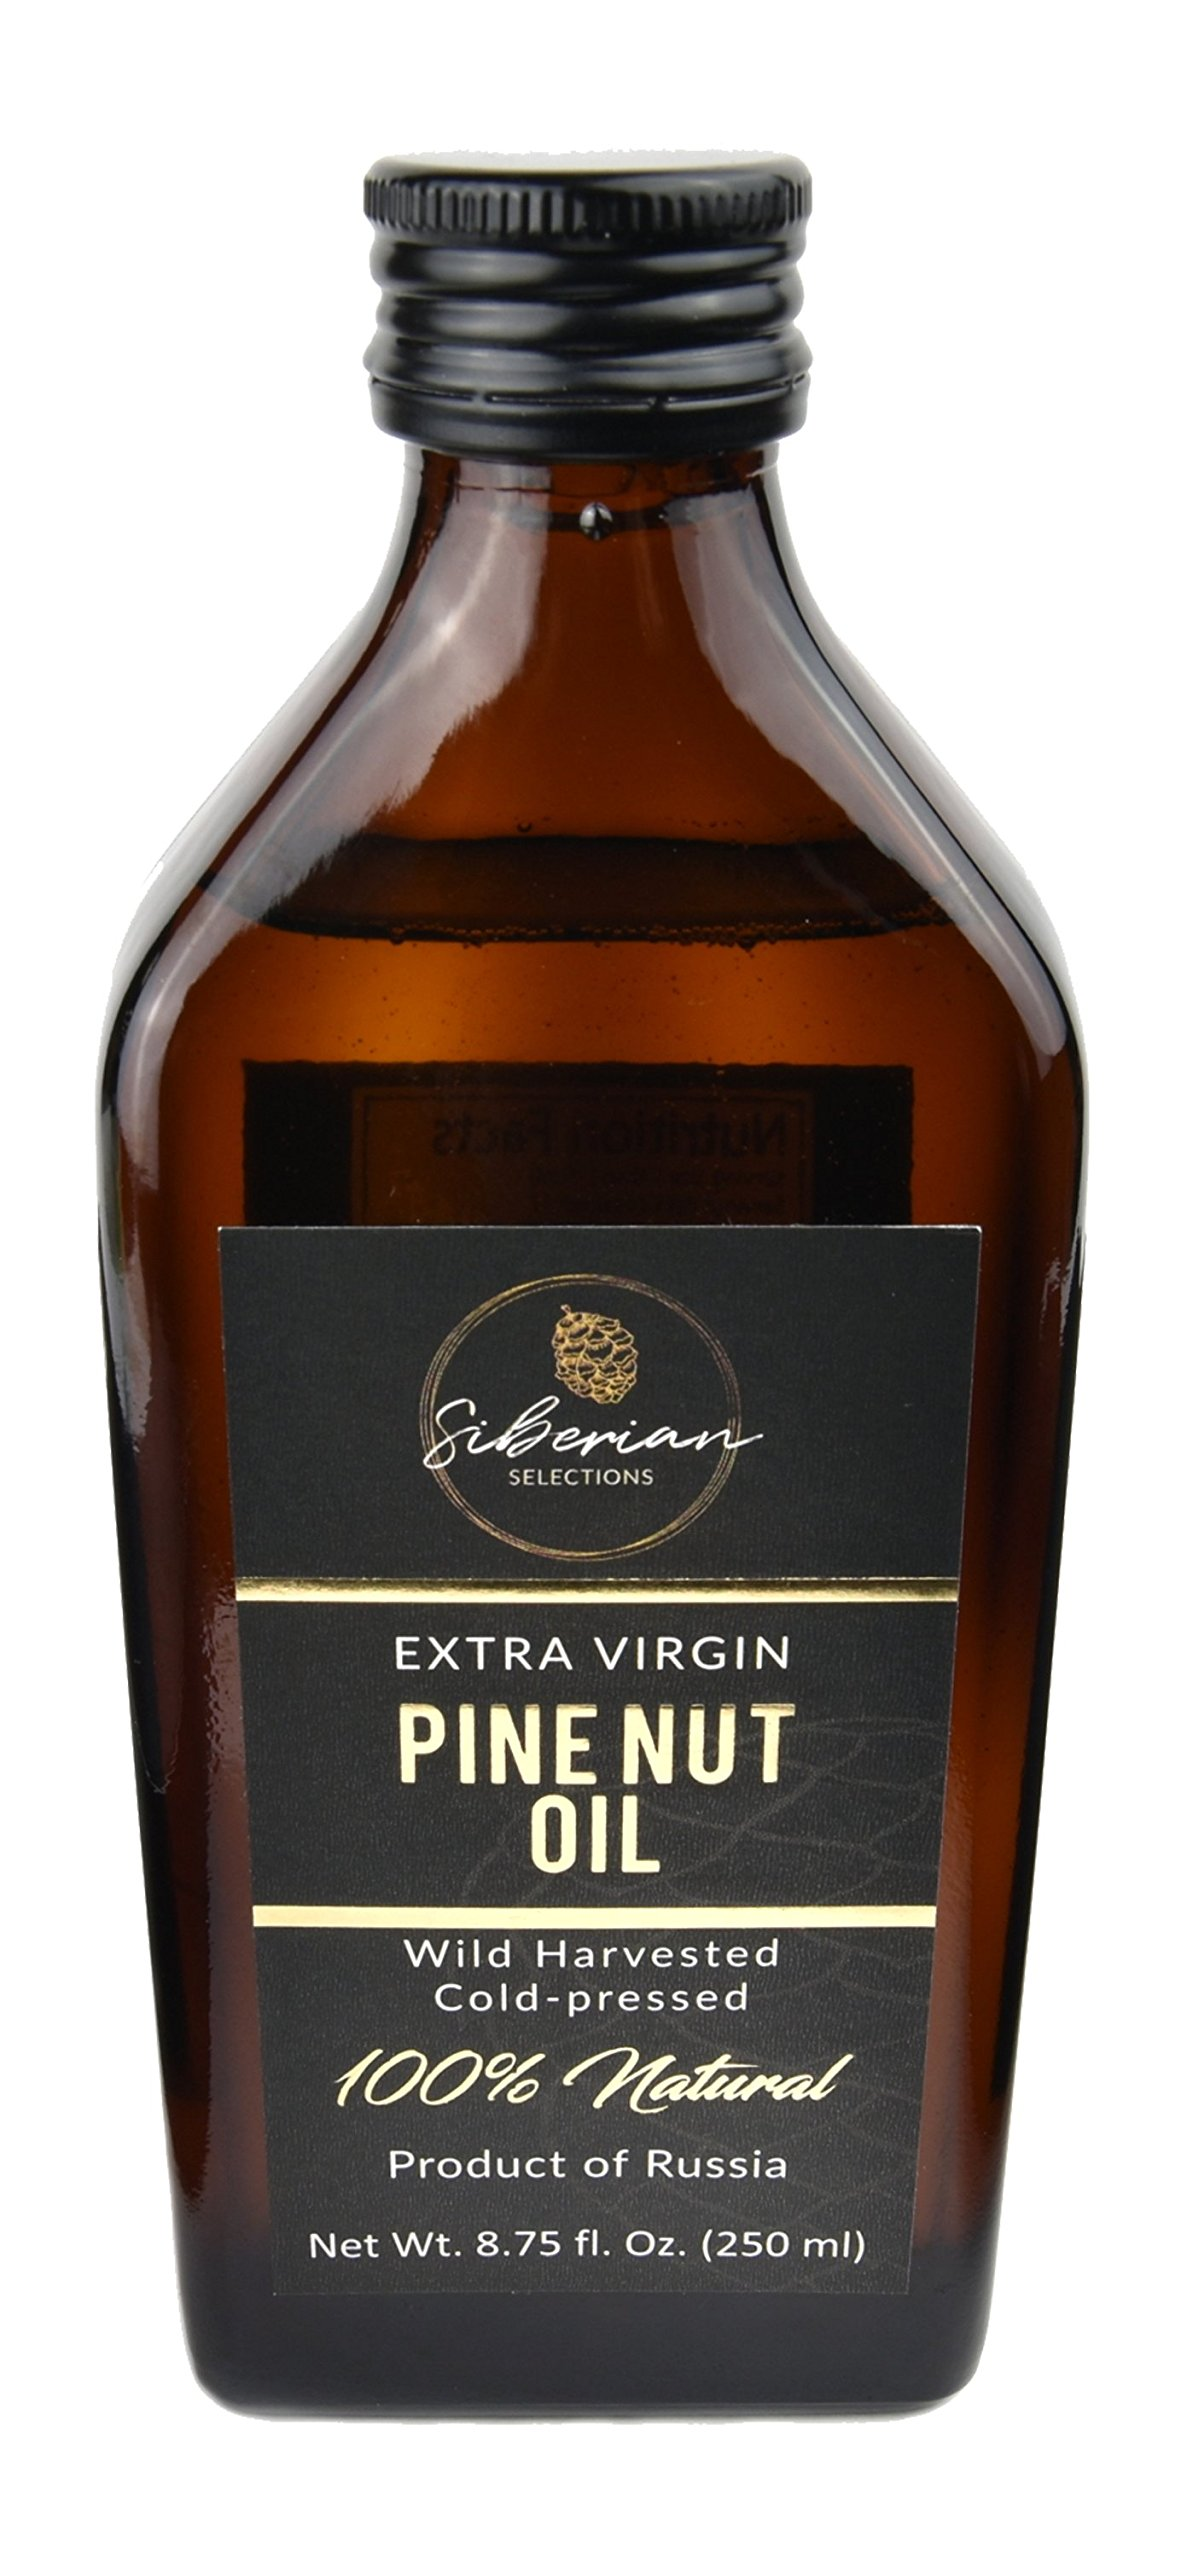 Siberian Selections Pine Nut Oil, 250ml by Siberian Selections